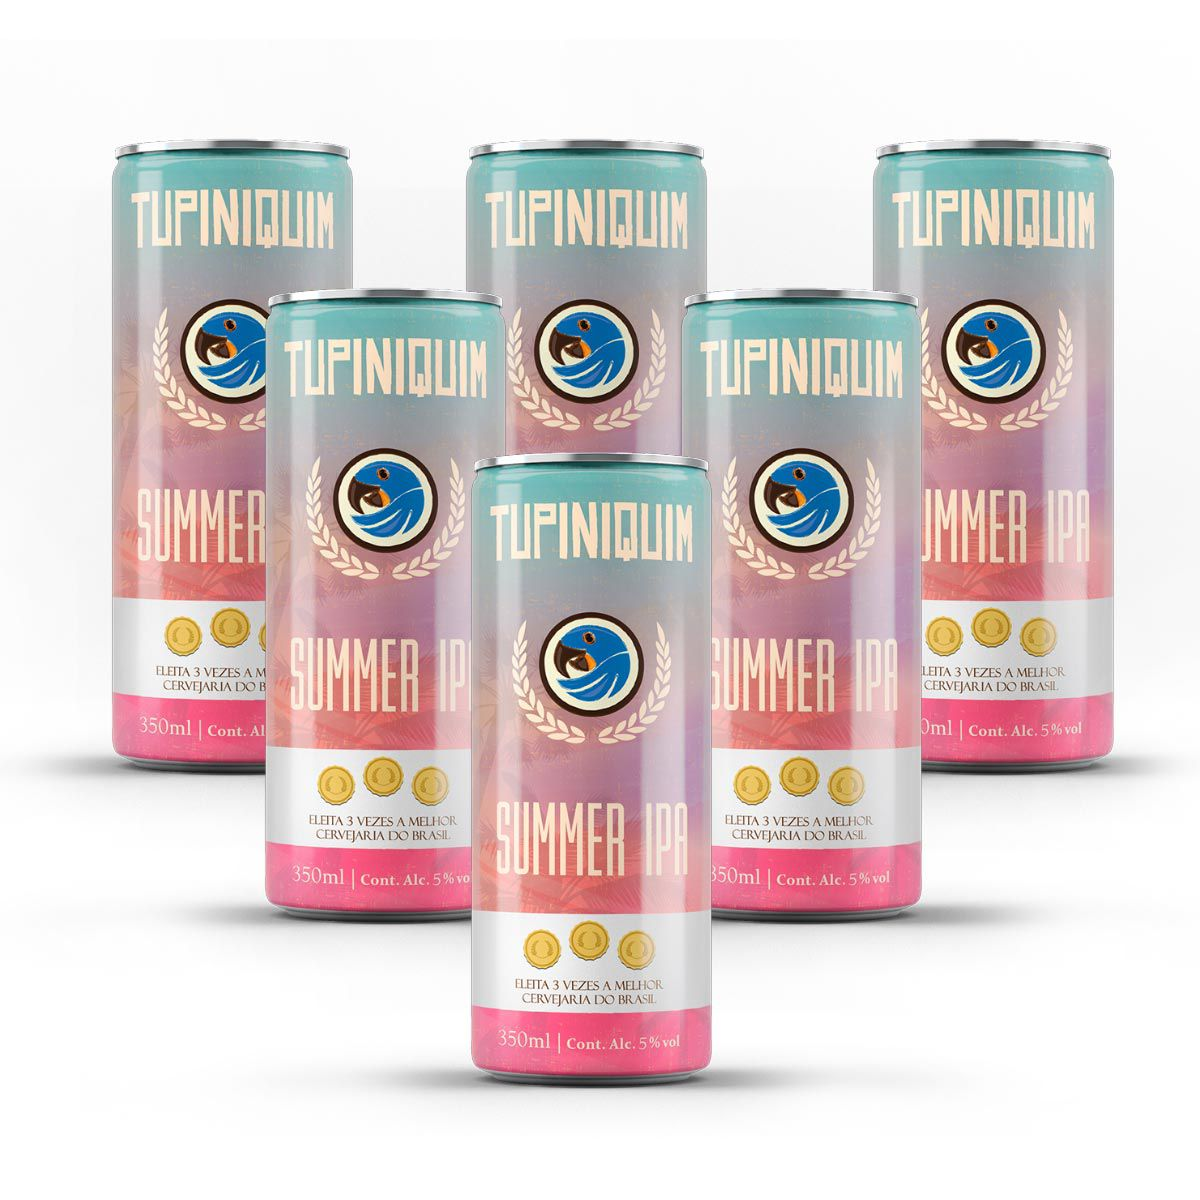 Pack Tupiniquim Summer IPA 6 cervejas 350ml